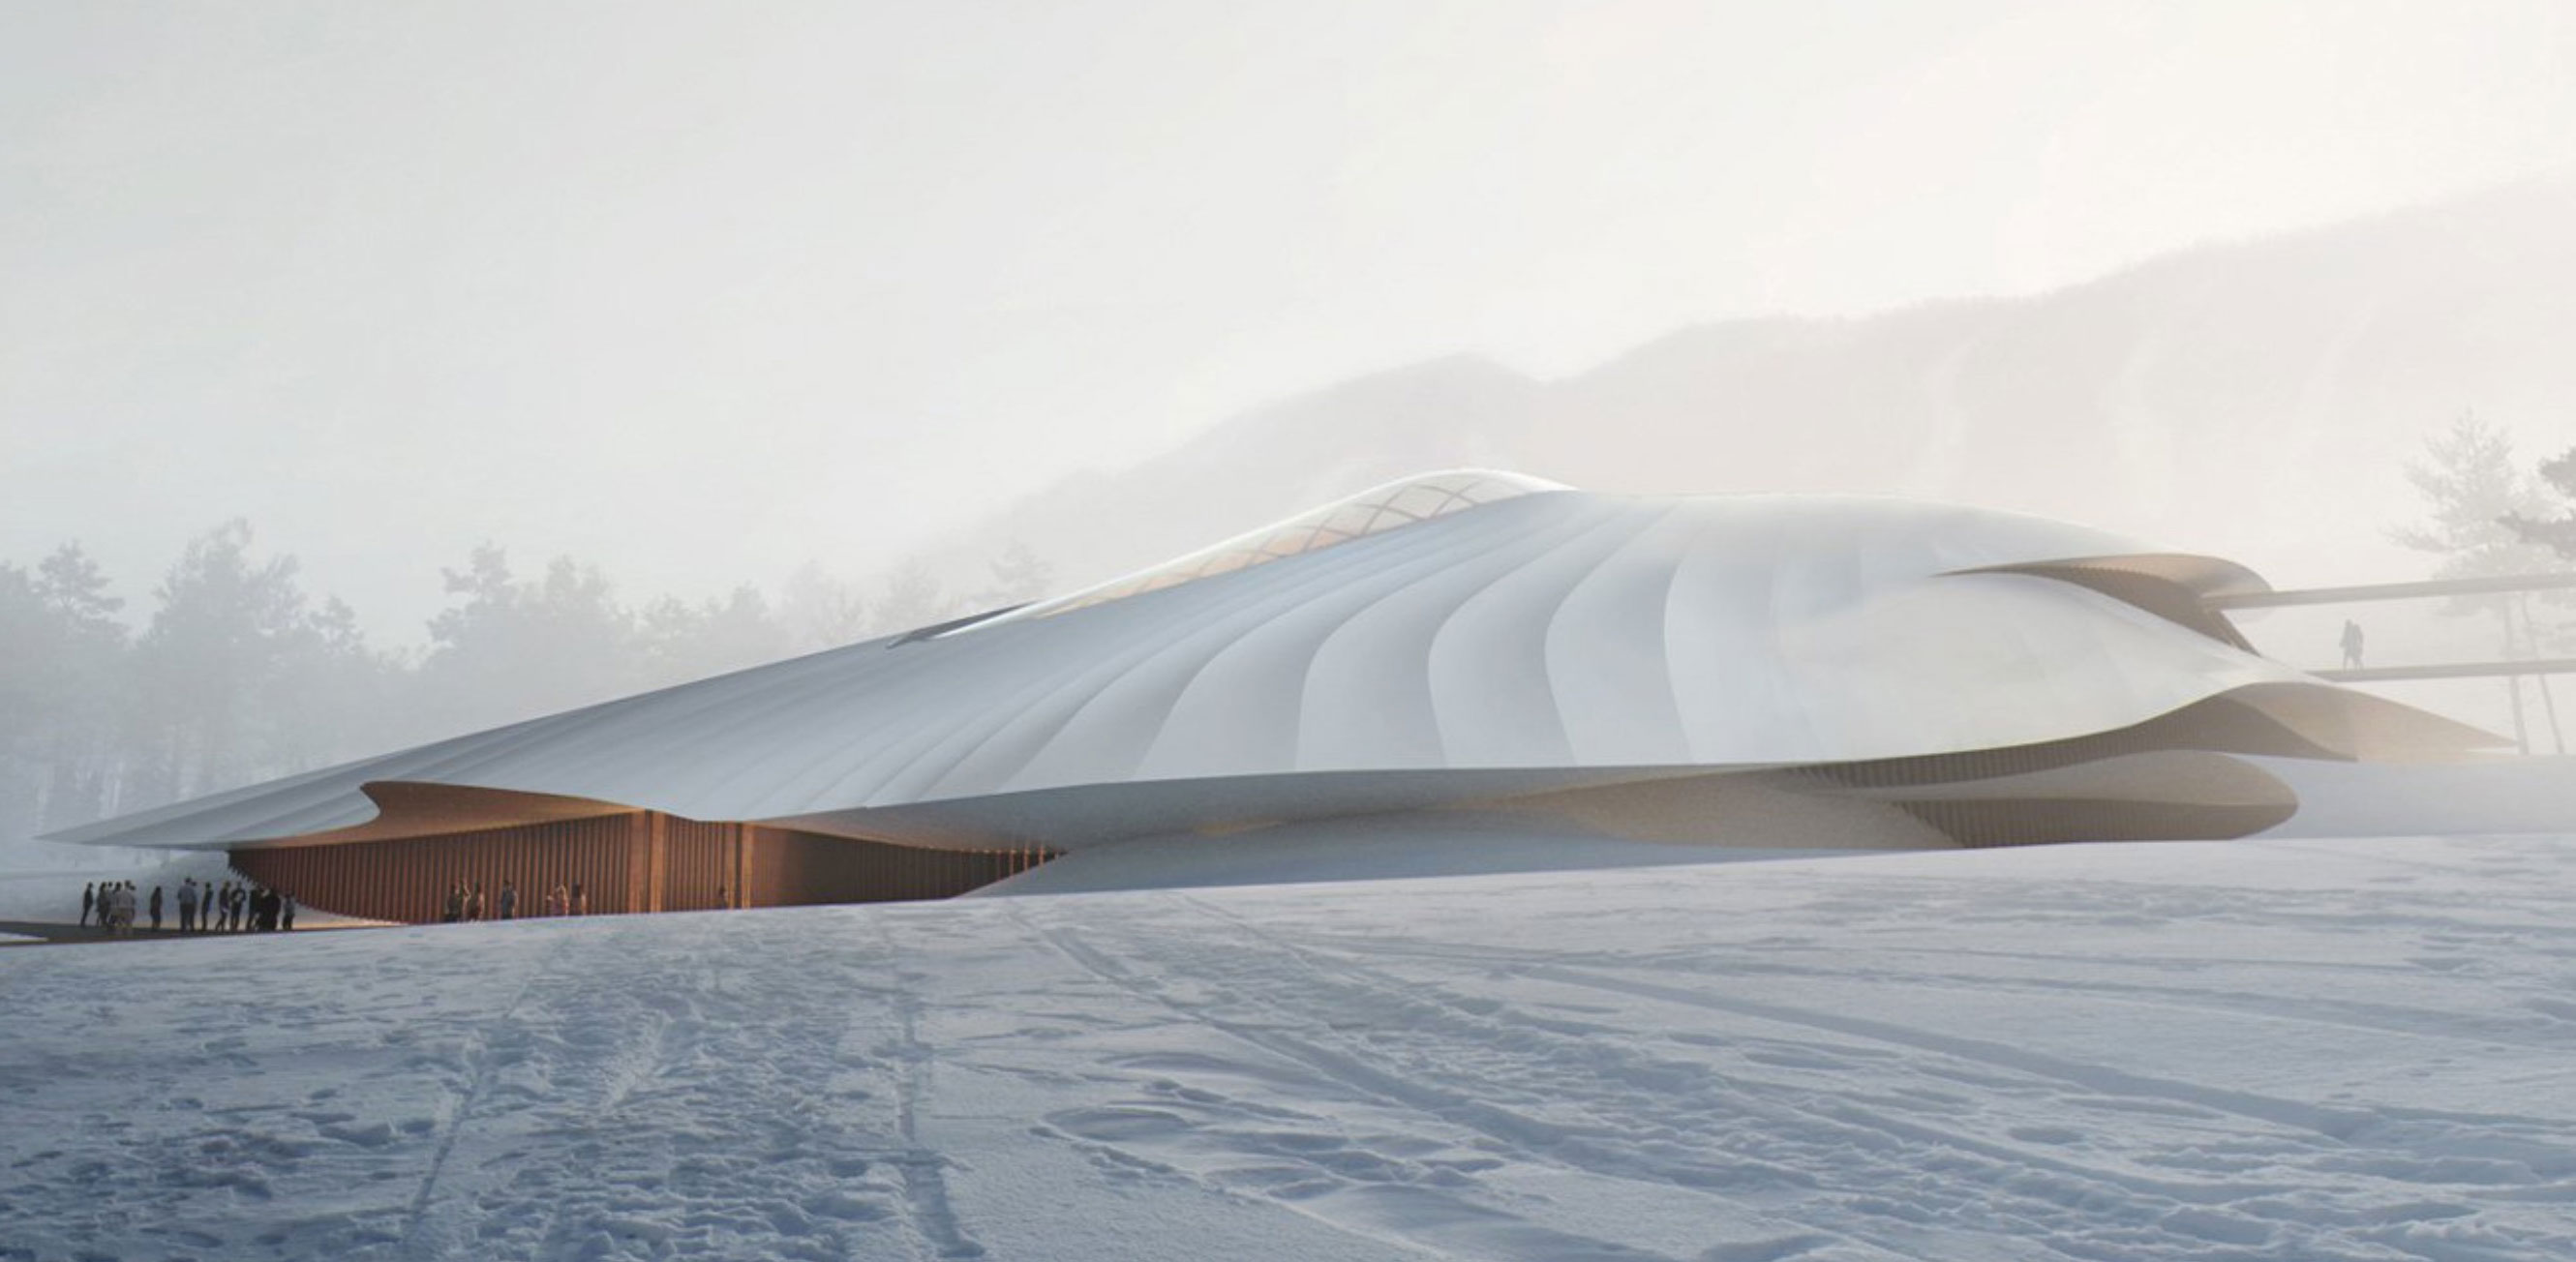 Could MAD's building bring big ideas to northern China?